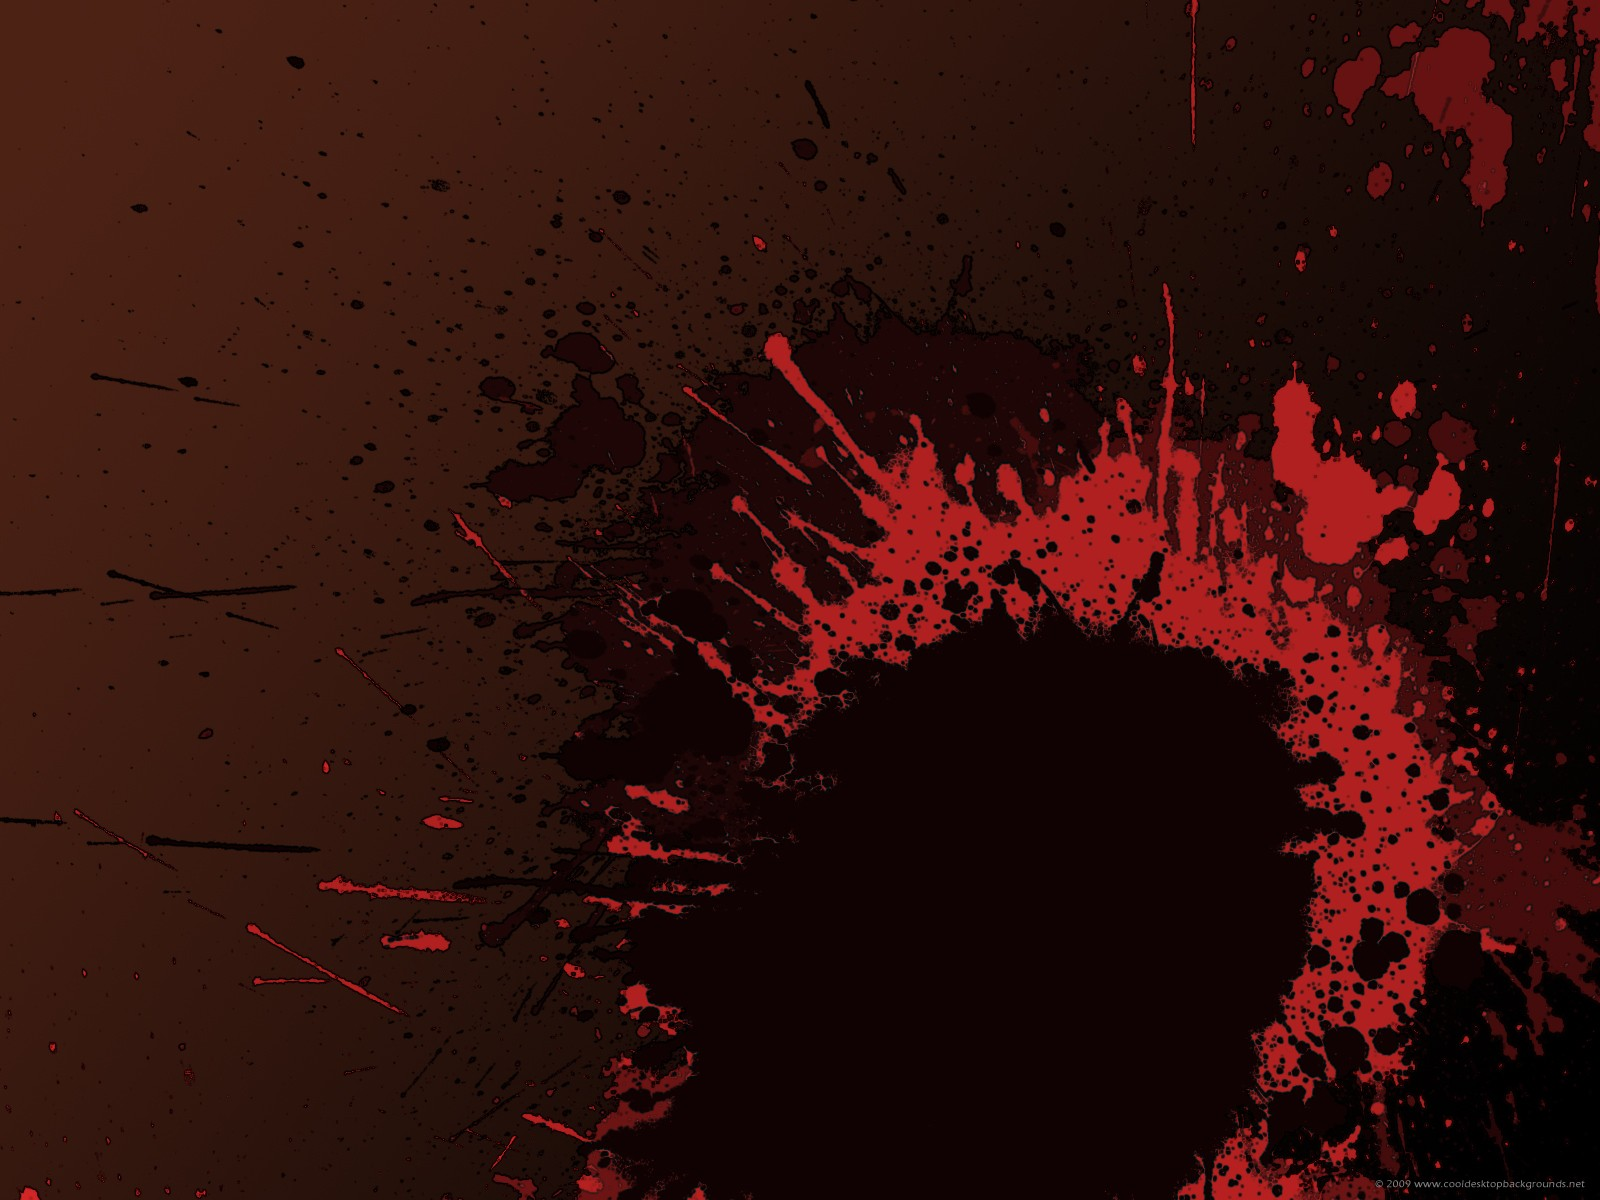 Dexter Blood Spatter Wallpaper - WallpaperSafari